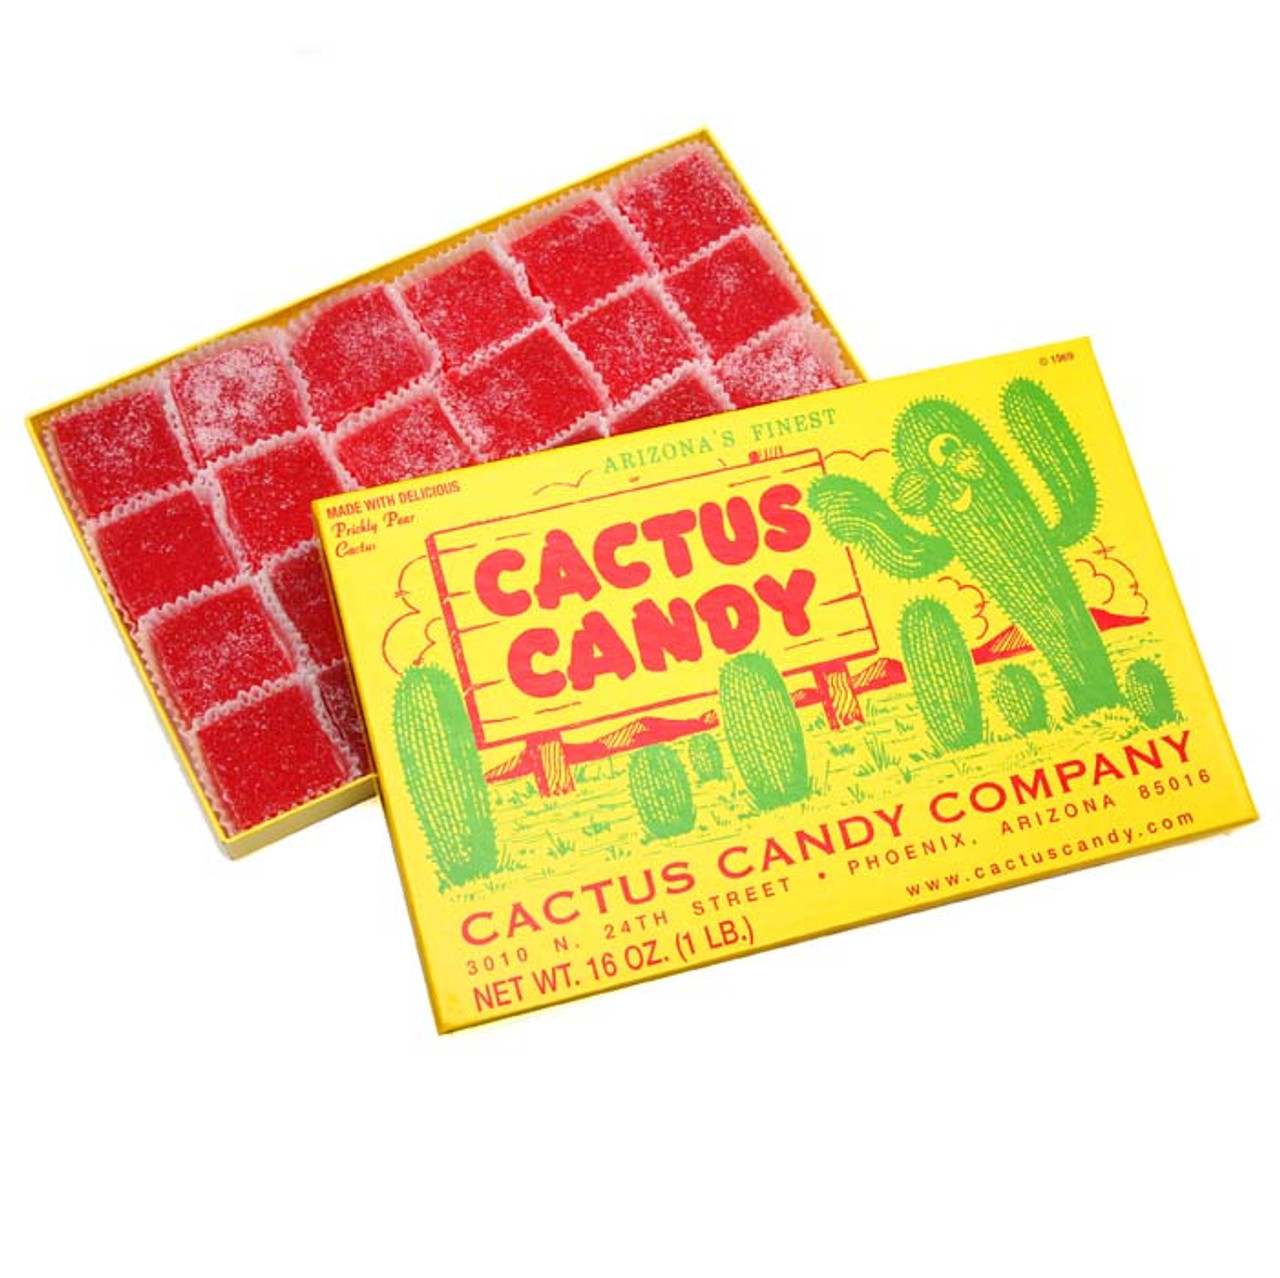 Box Cactus Candy 1lb-Case of 6